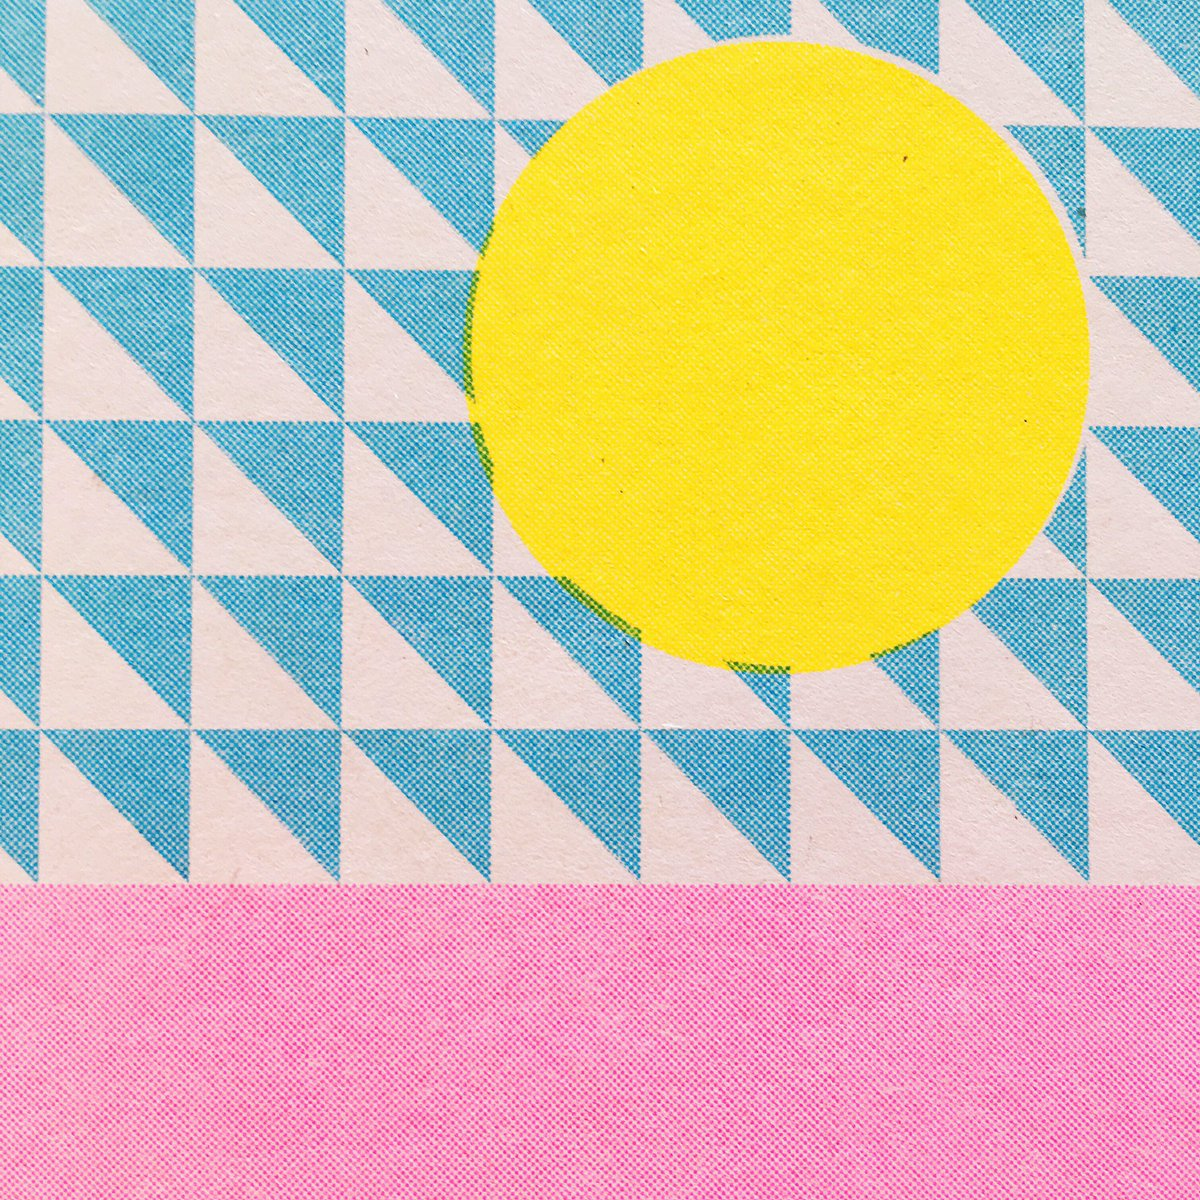 Happy Monday!   #print #risoprint #risographprint #risograph #detail #pattern #illustration #geometric #circle #neonpink #monday #happy<br>http://pic.twitter.com/kCkEUXfGT9